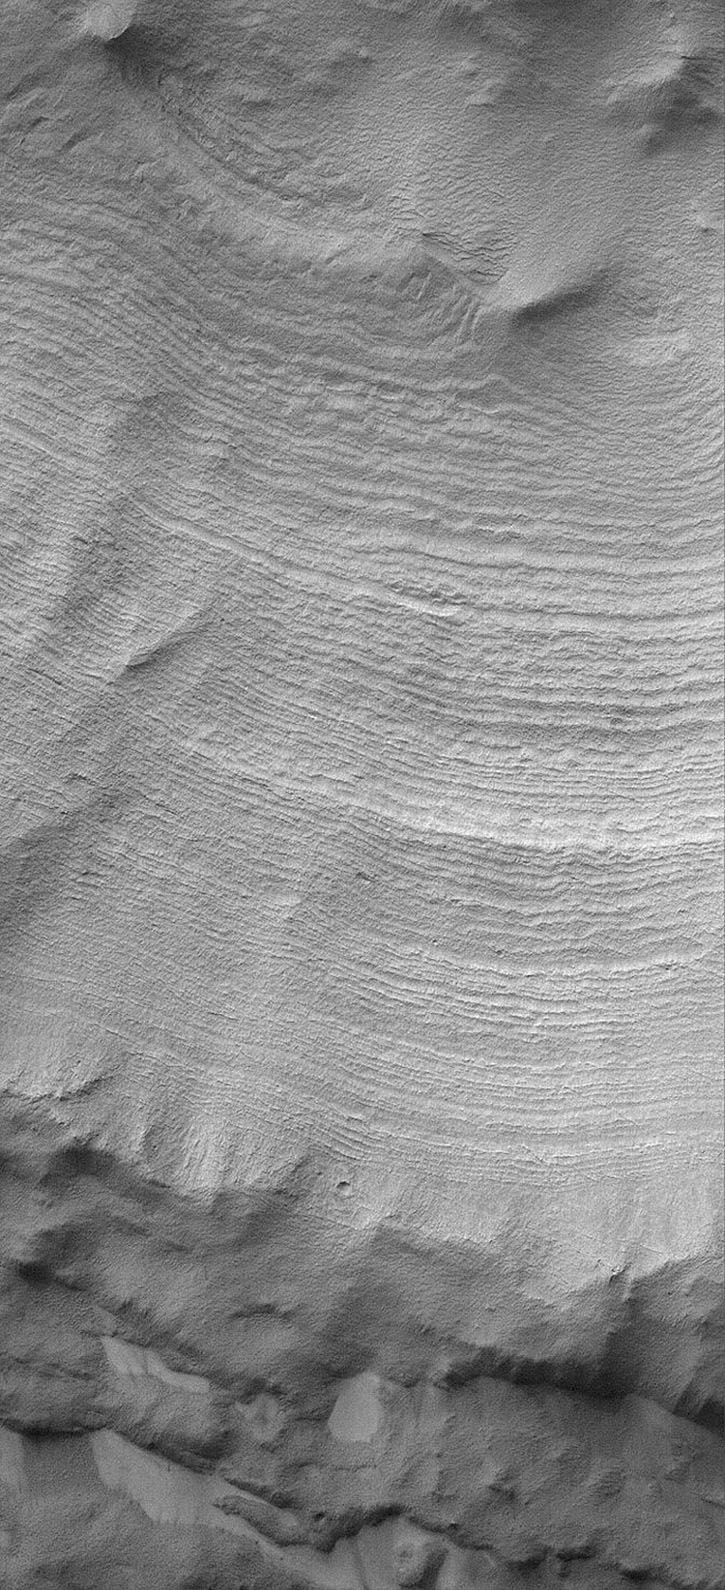 NASA's Mars Global Surveyor shows layers exposed in the walls of a crater-like form in the south polar region of Mars.